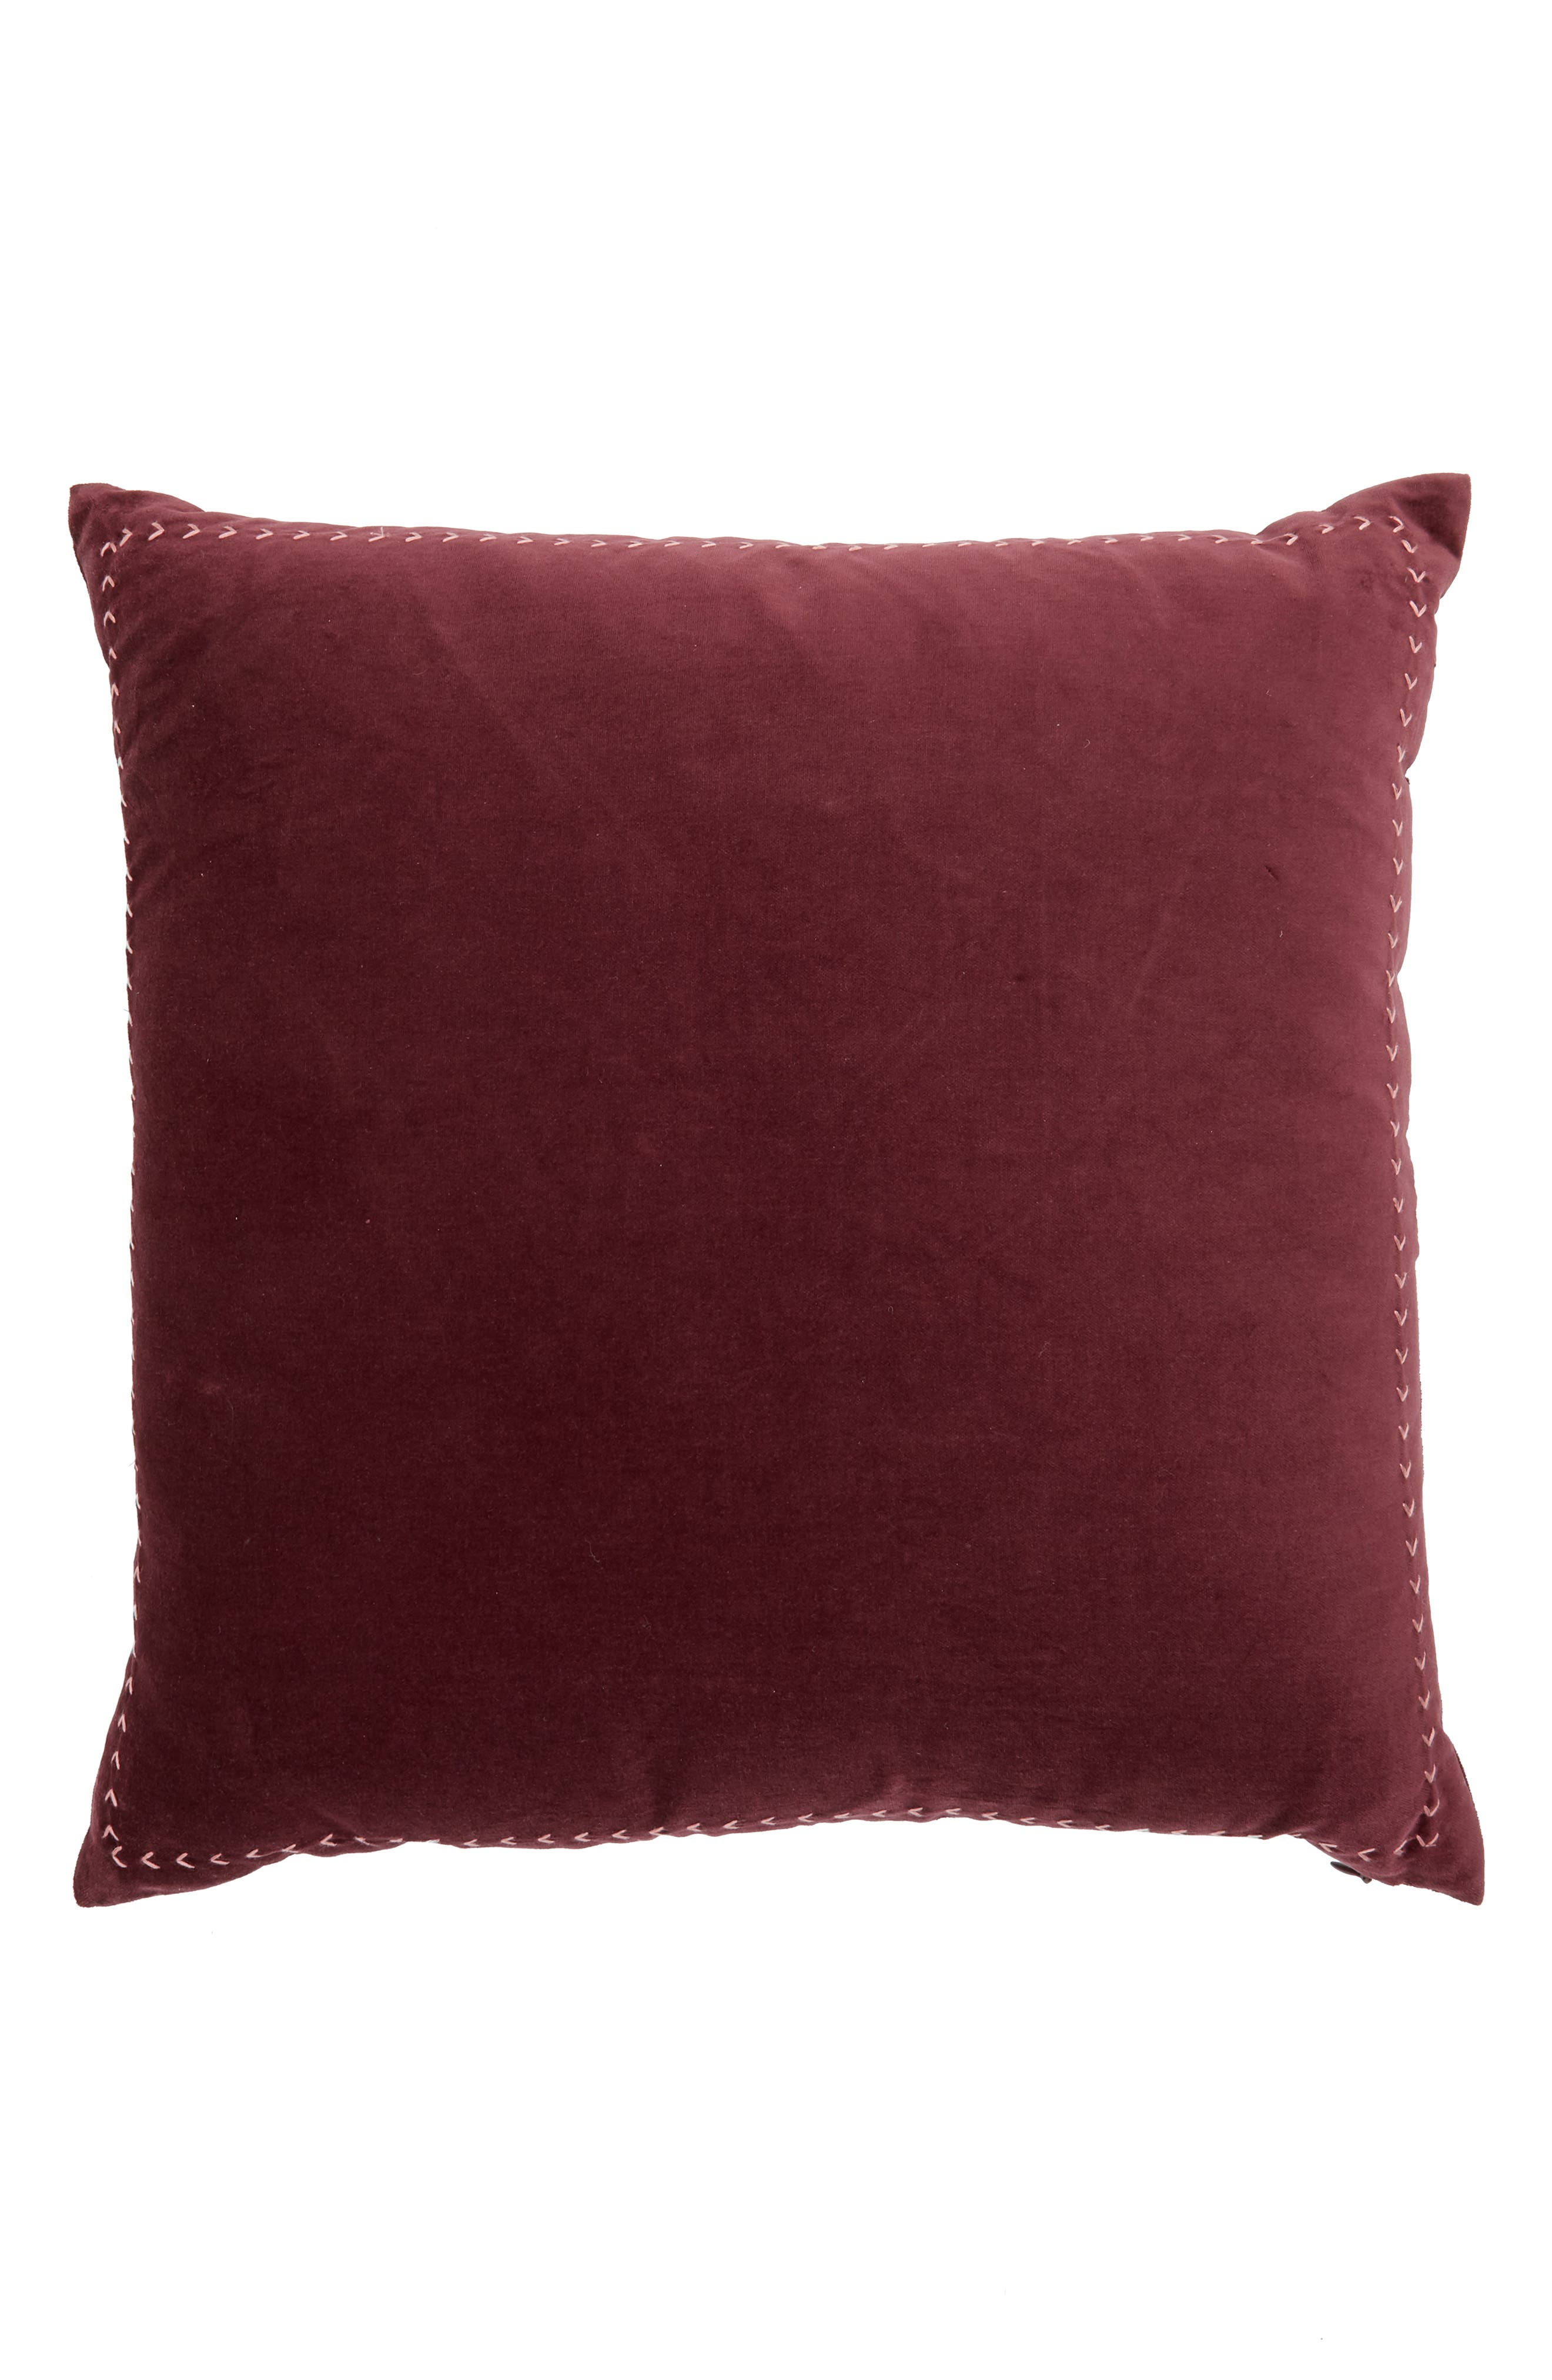 Velvet Accent Pillow,                             Alternate thumbnail 4, color,